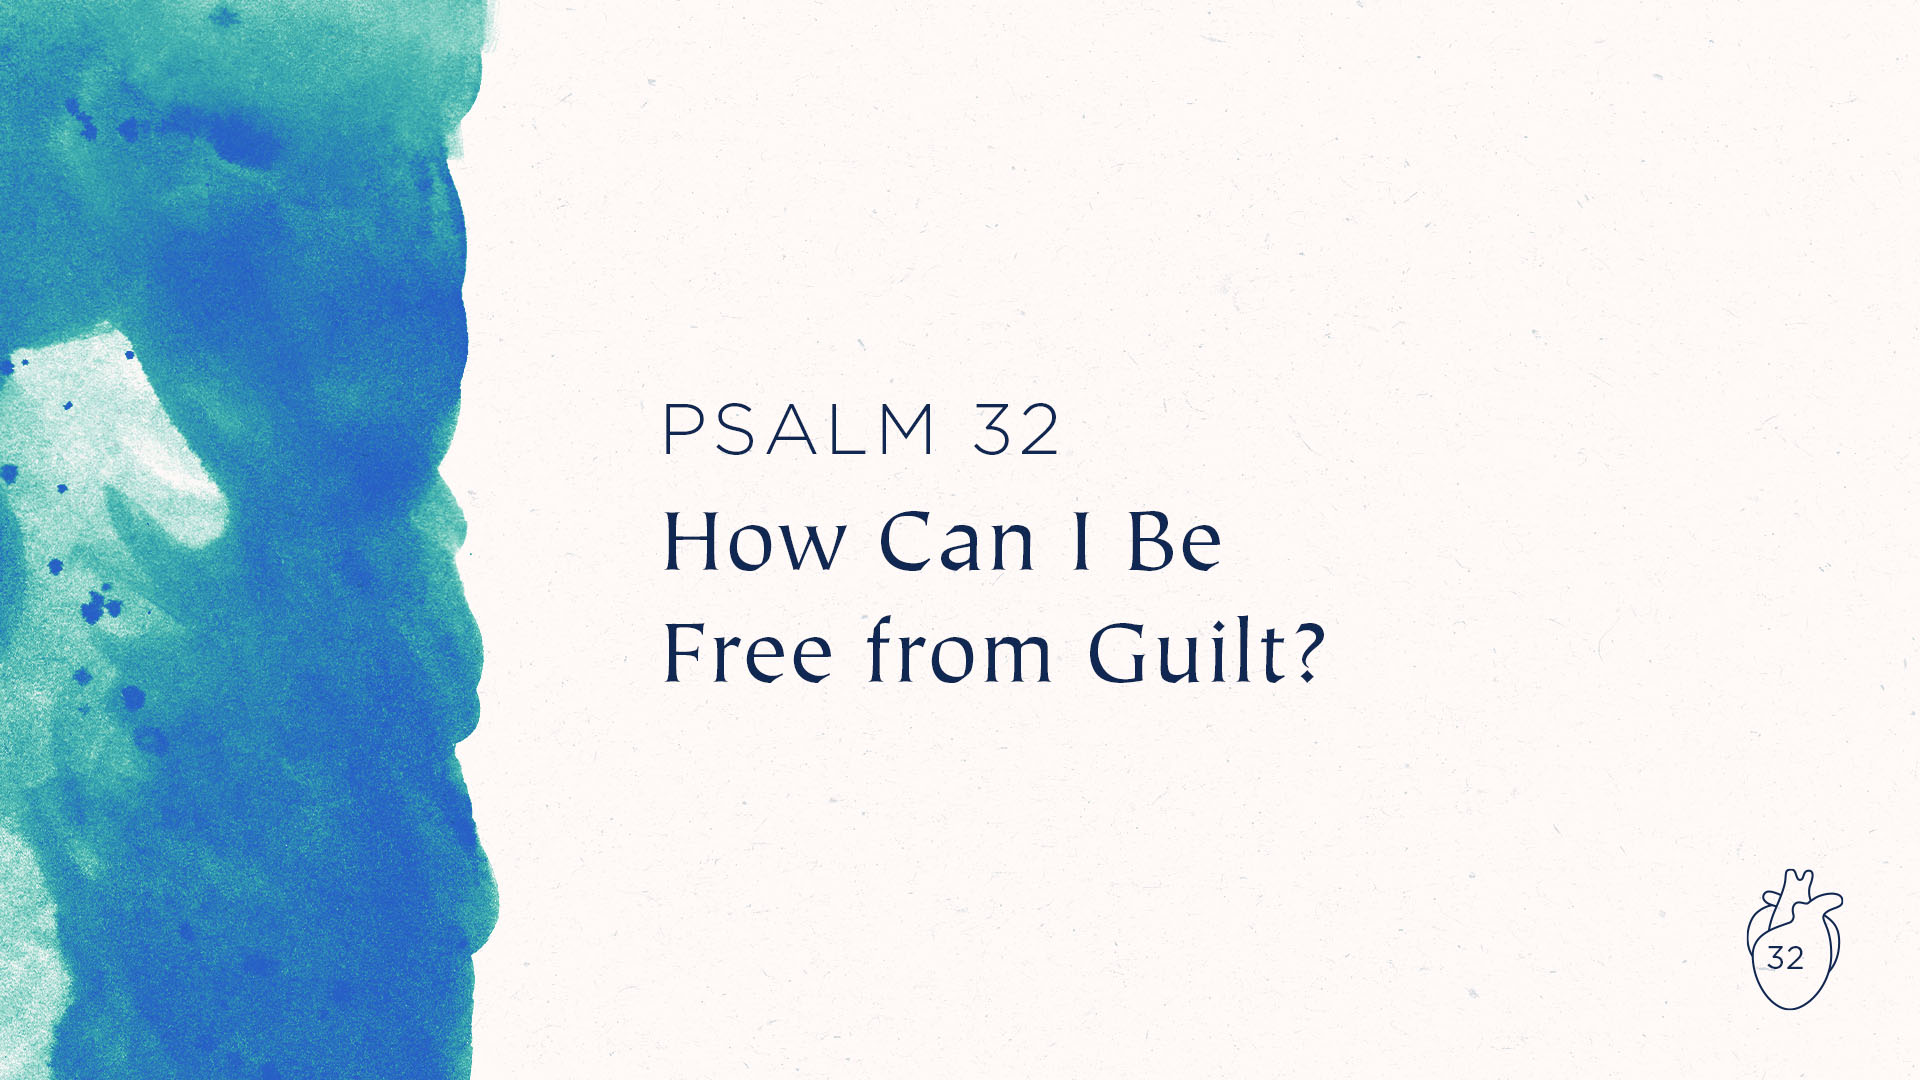 How Can I Be Free from Guilt?